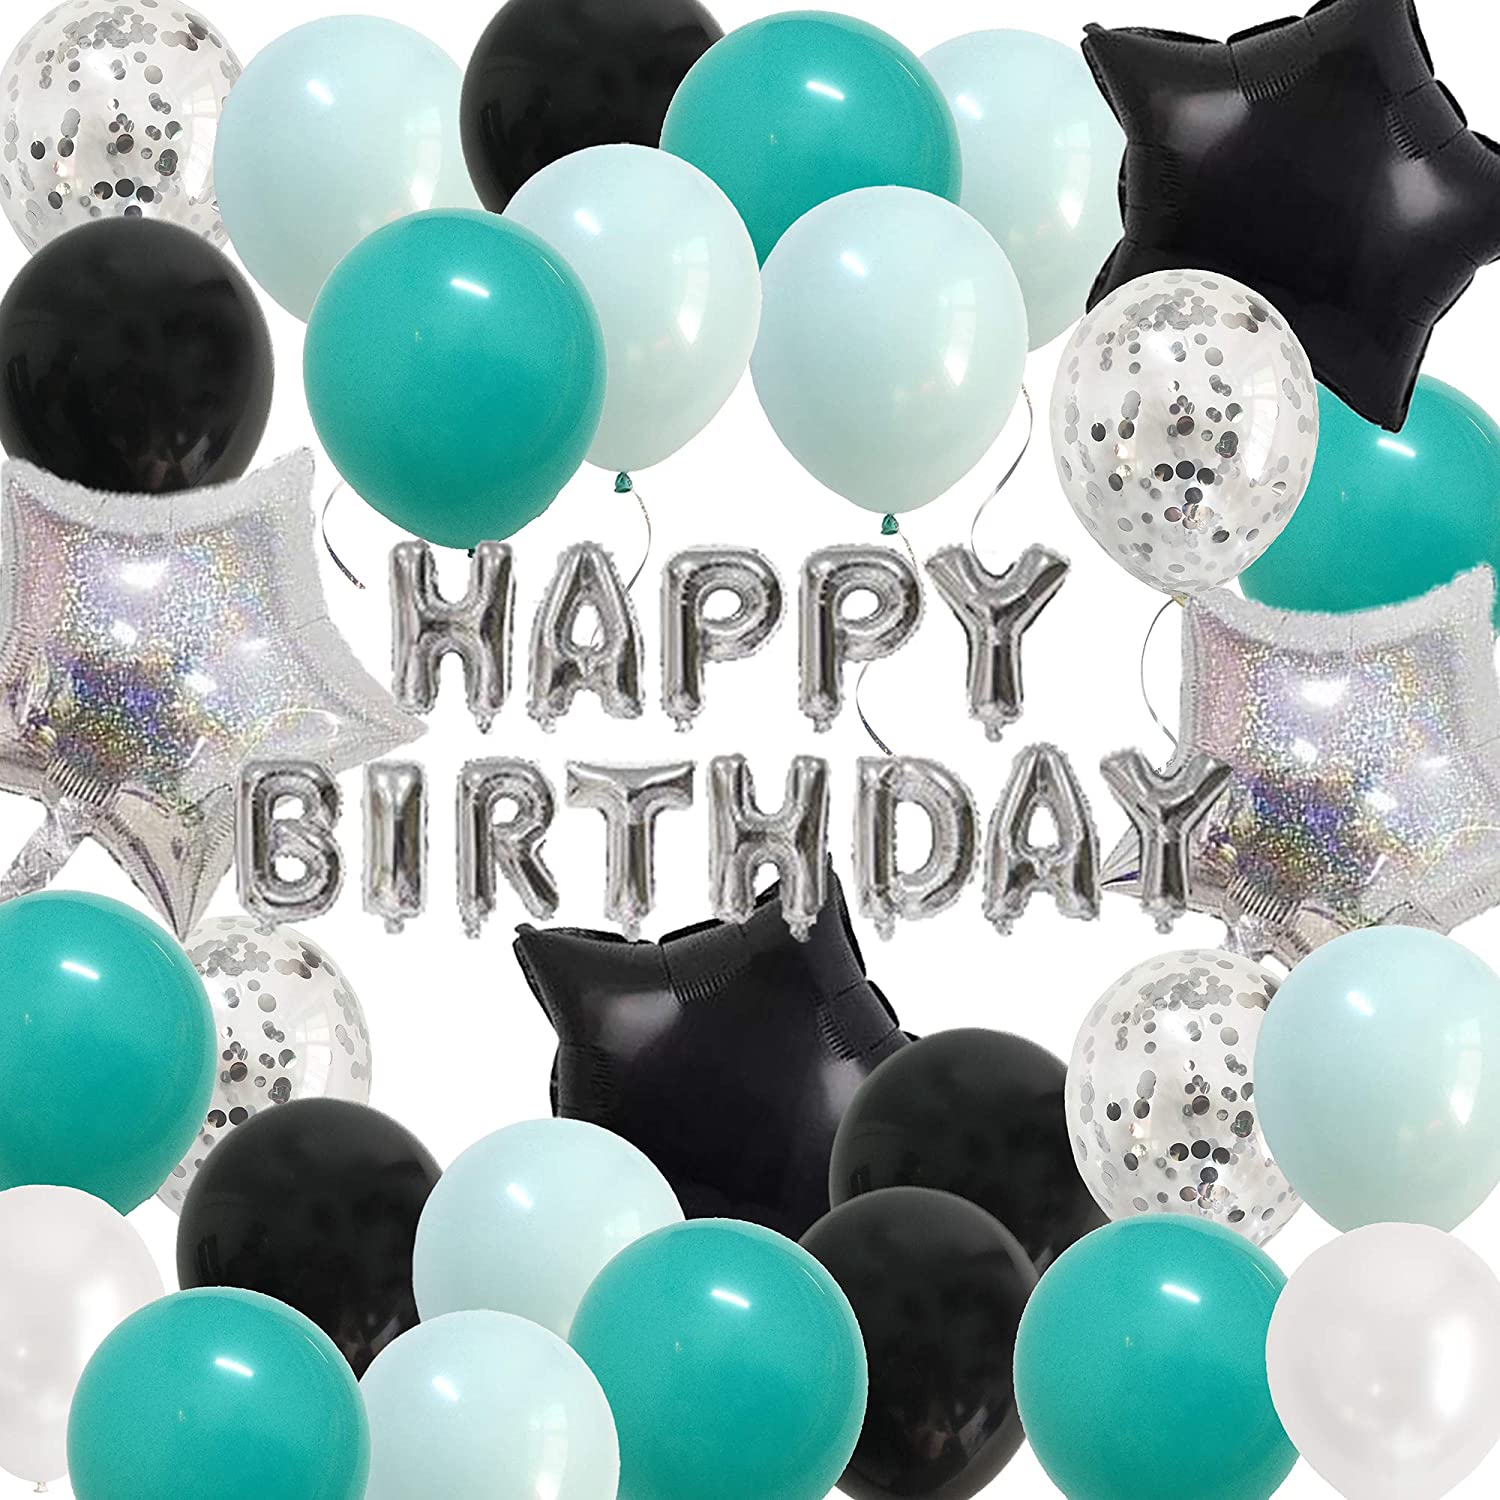 Teal Silver birthday Decorations - Happy Birthday Party Balloons black Turquiose for Boys Girls B-day Decor Supplies (Teal Silver)